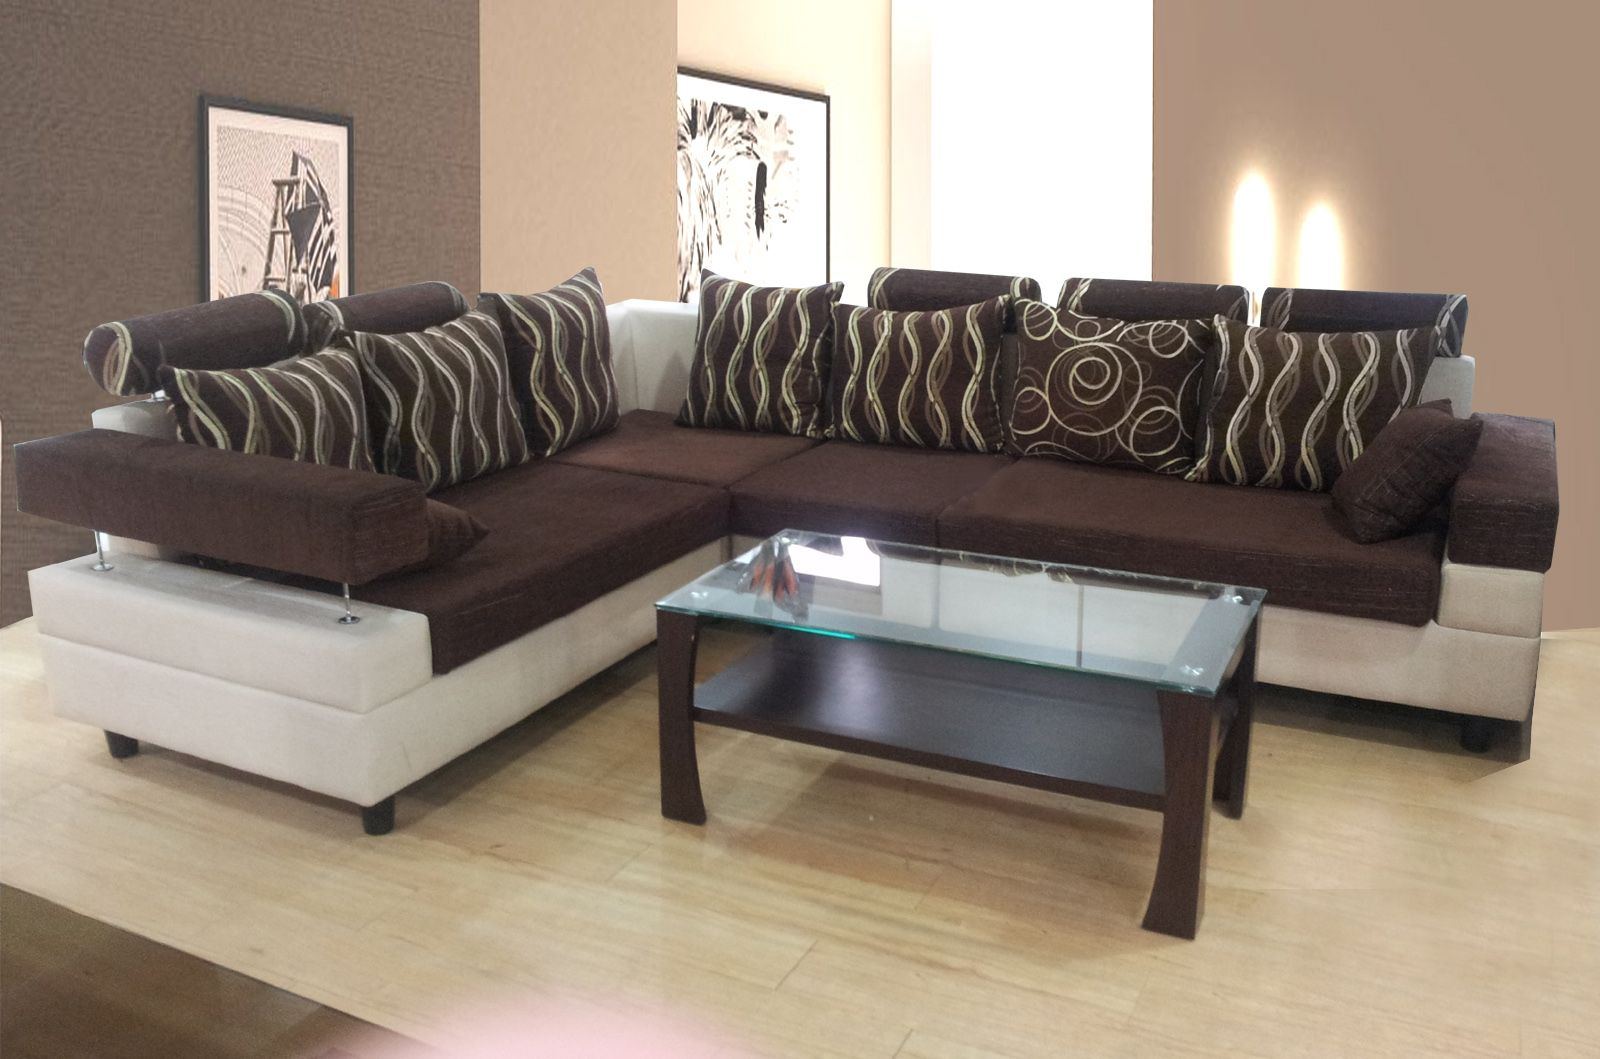 Affordable And Good Quality Nairobi Sofa Set Designs More Here Http Nairobisofasets Blogspot Com Latest Sofa Designs Sofa Set Designs Sofa Bed Design